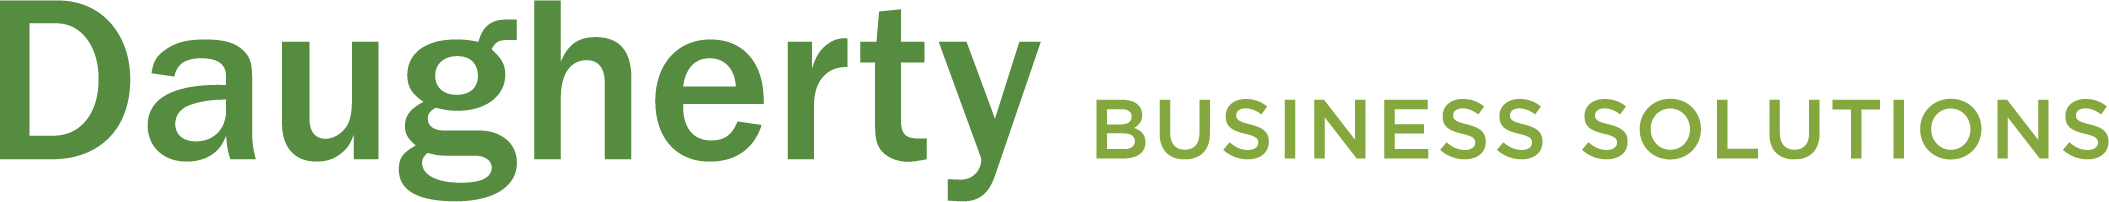 Daugherty Business Solutions Company Logo